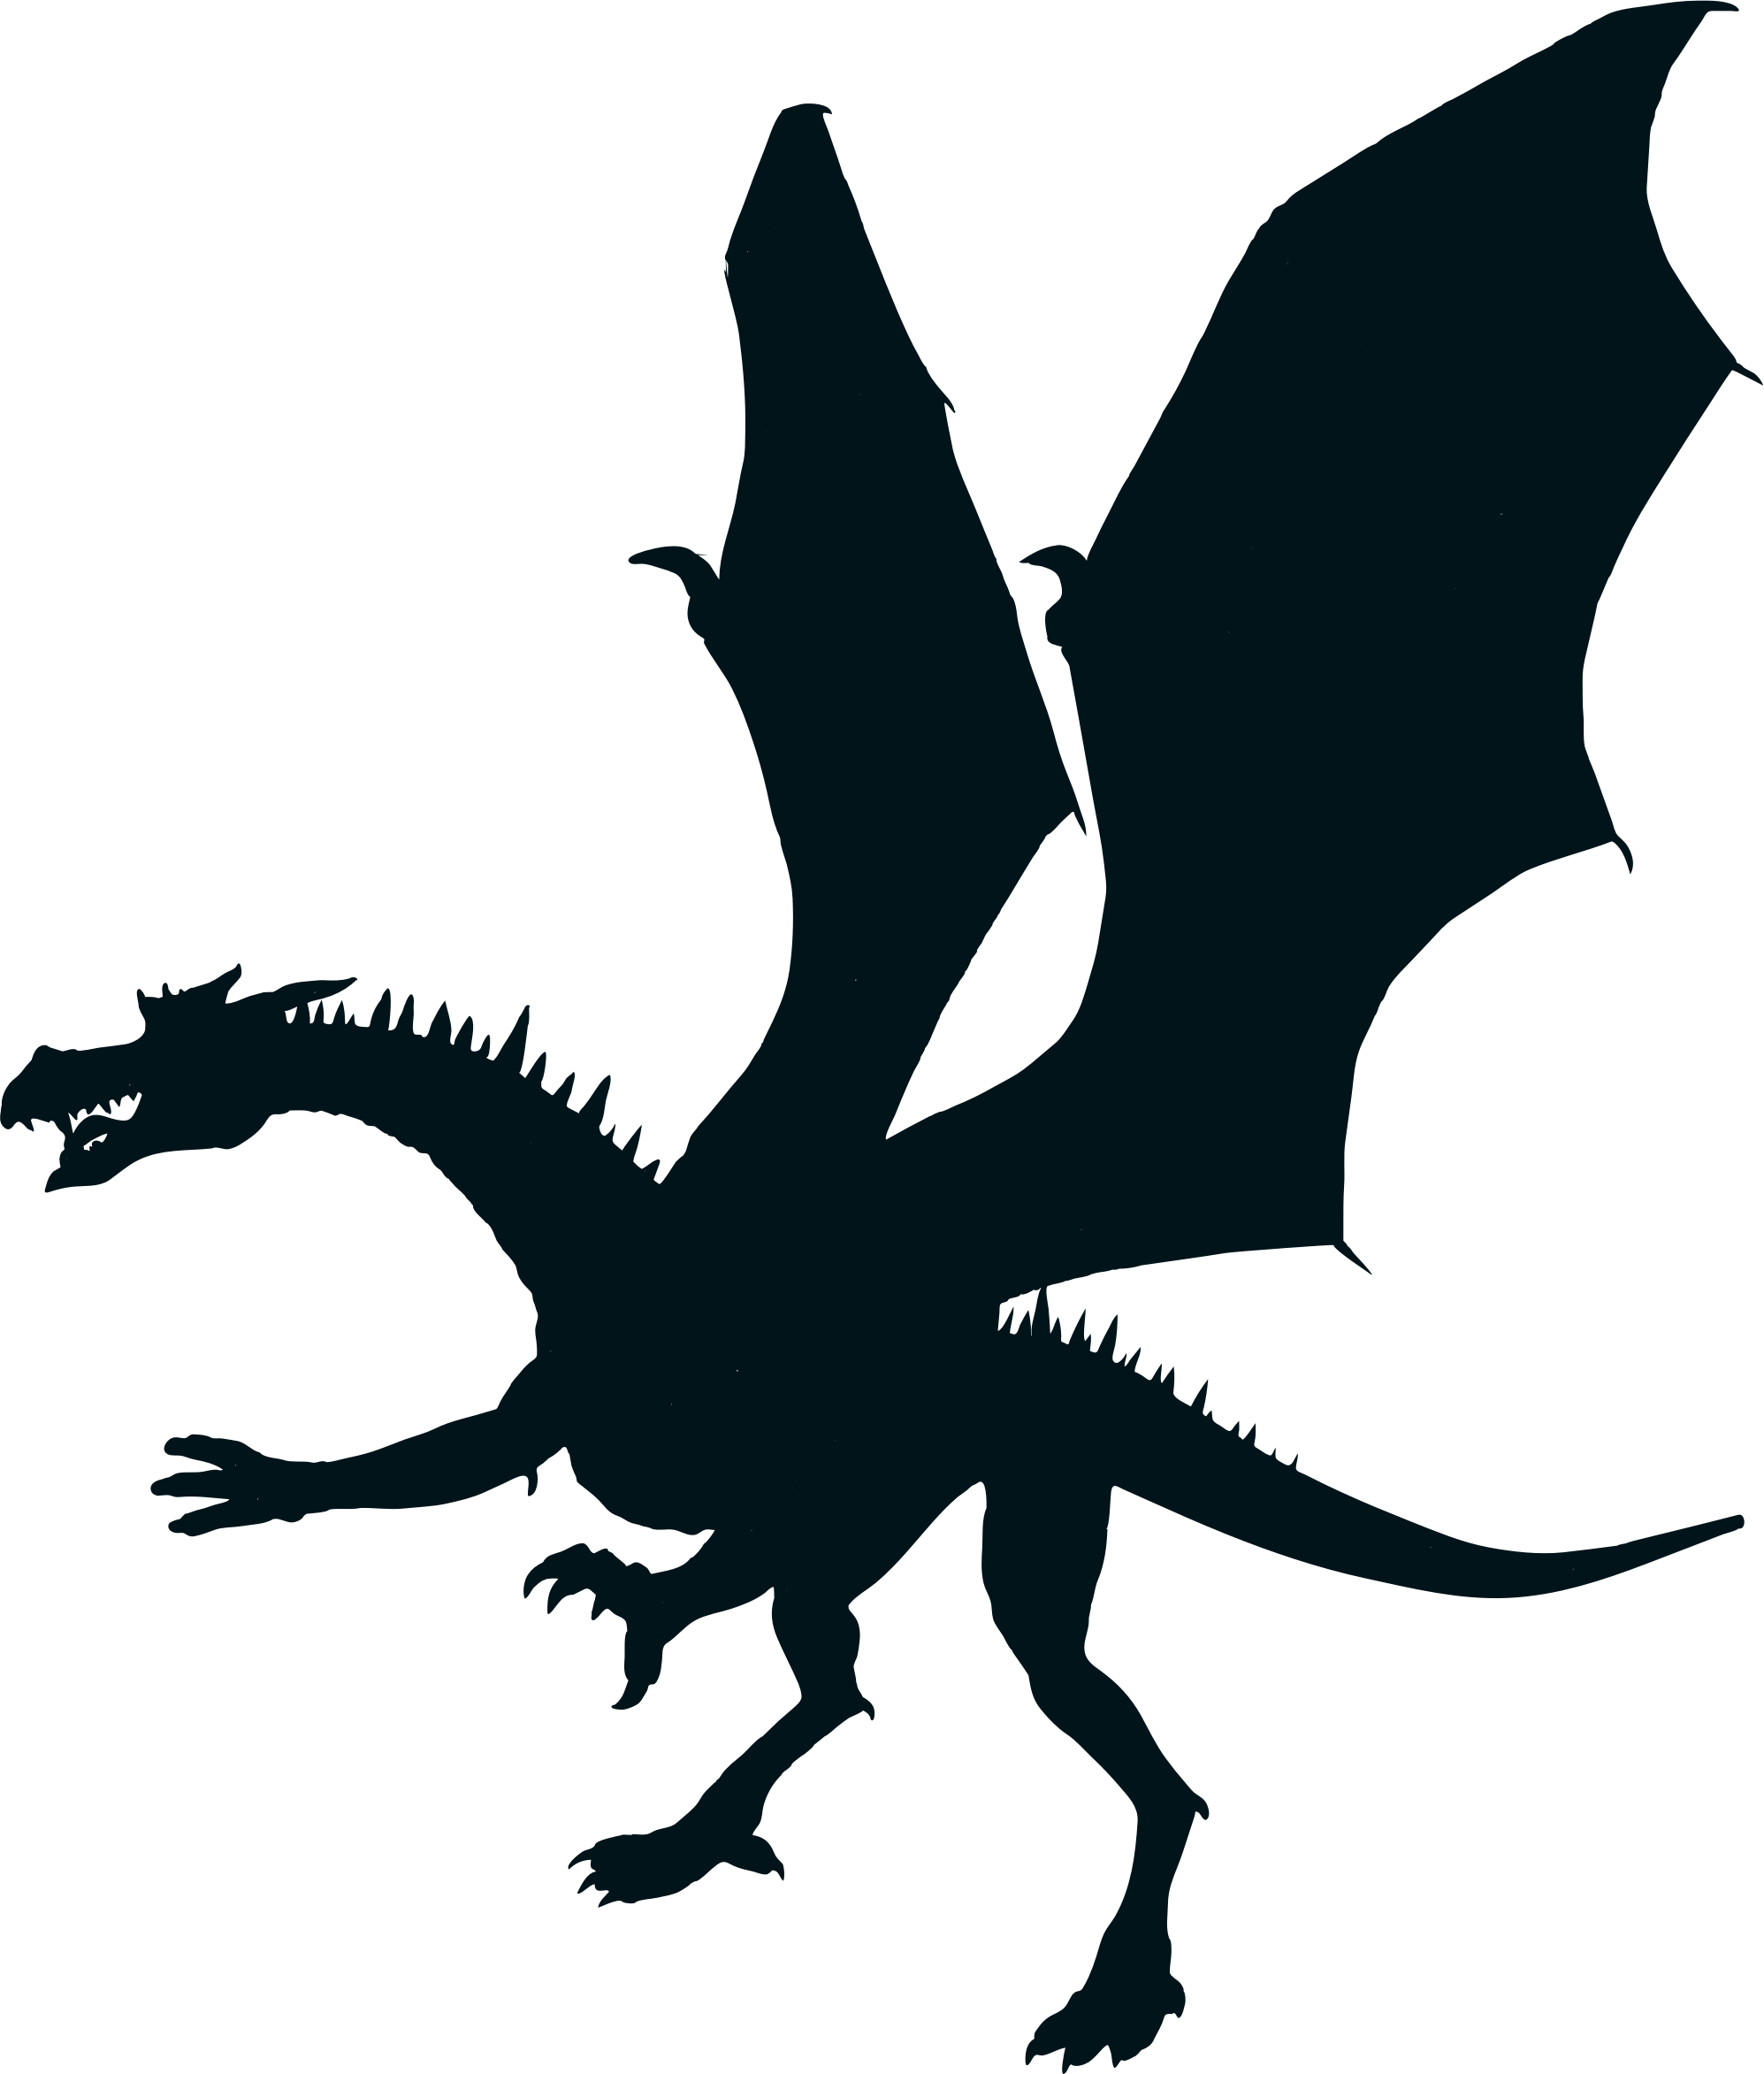 Dory clipart silhouette. Dragon images at getdrawings